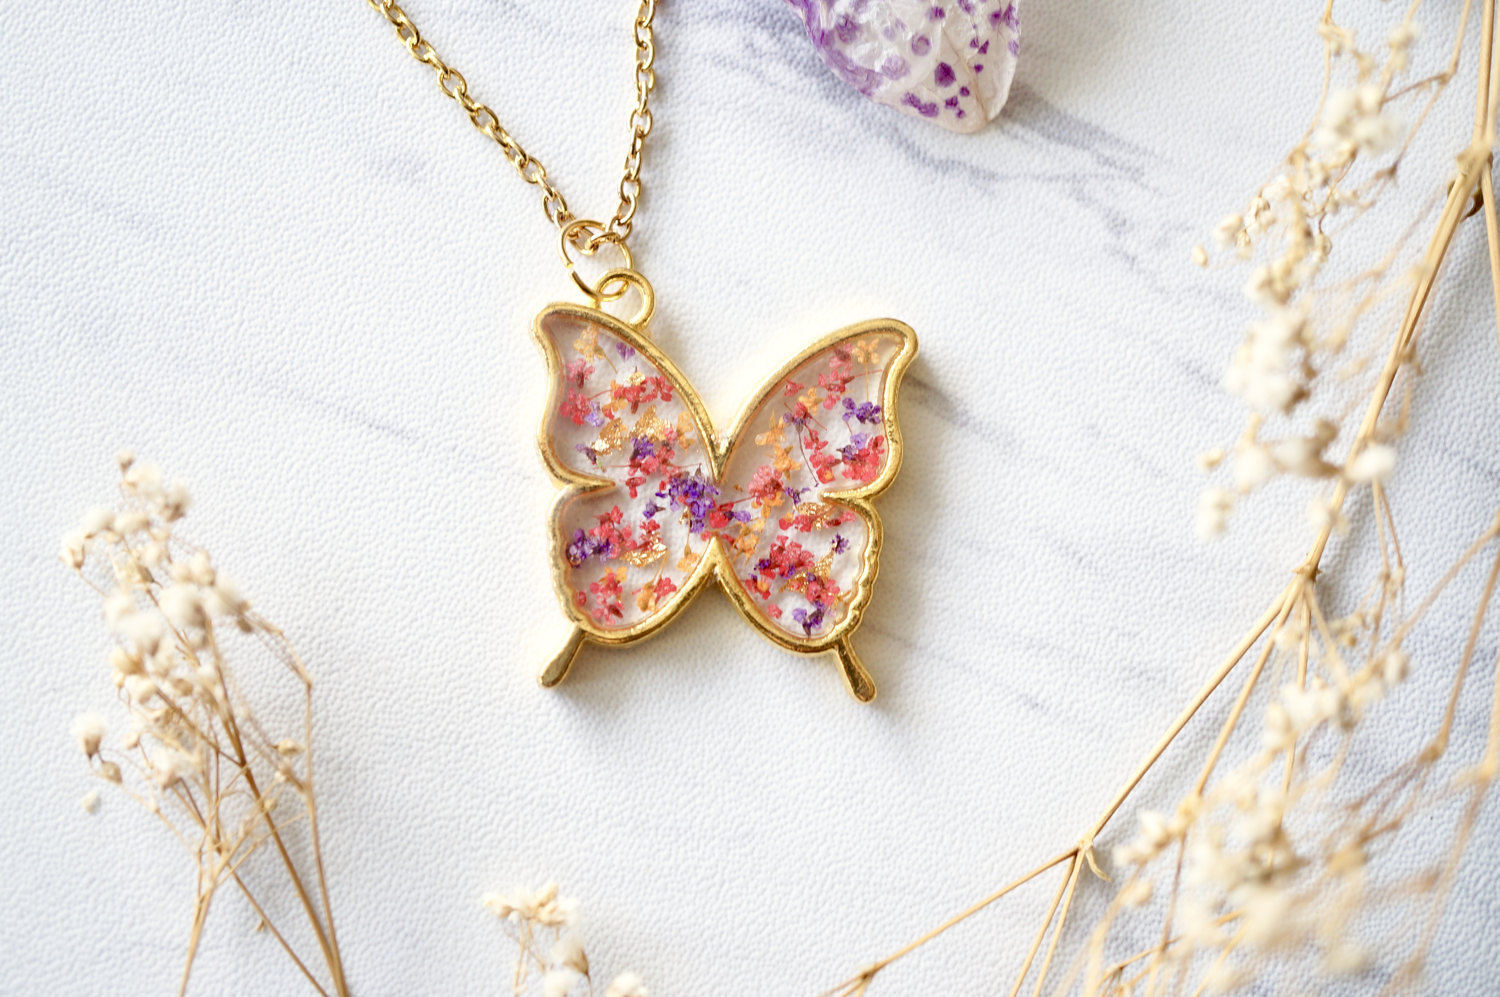 Real Dried Flowers and Resin Butterfly Necklace in Gold, Purple, Orange, Red